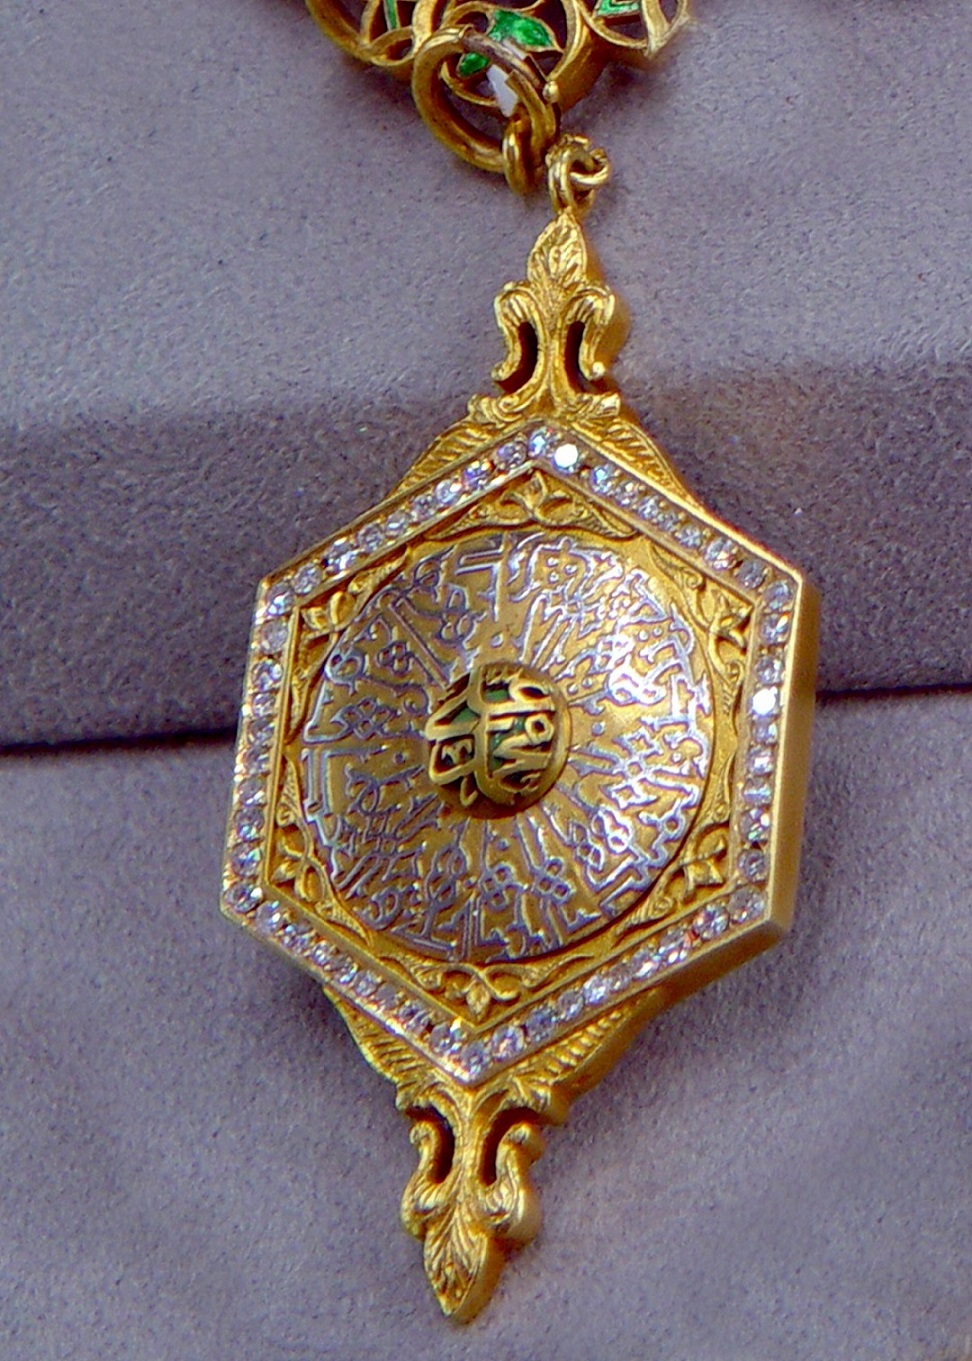 Necklace Governor Mohammed Ali Pasha Discover Egypt S Monuments Ministry Of Tourism And Antiquities Mohammed Ali Royal Jewelry Pasha